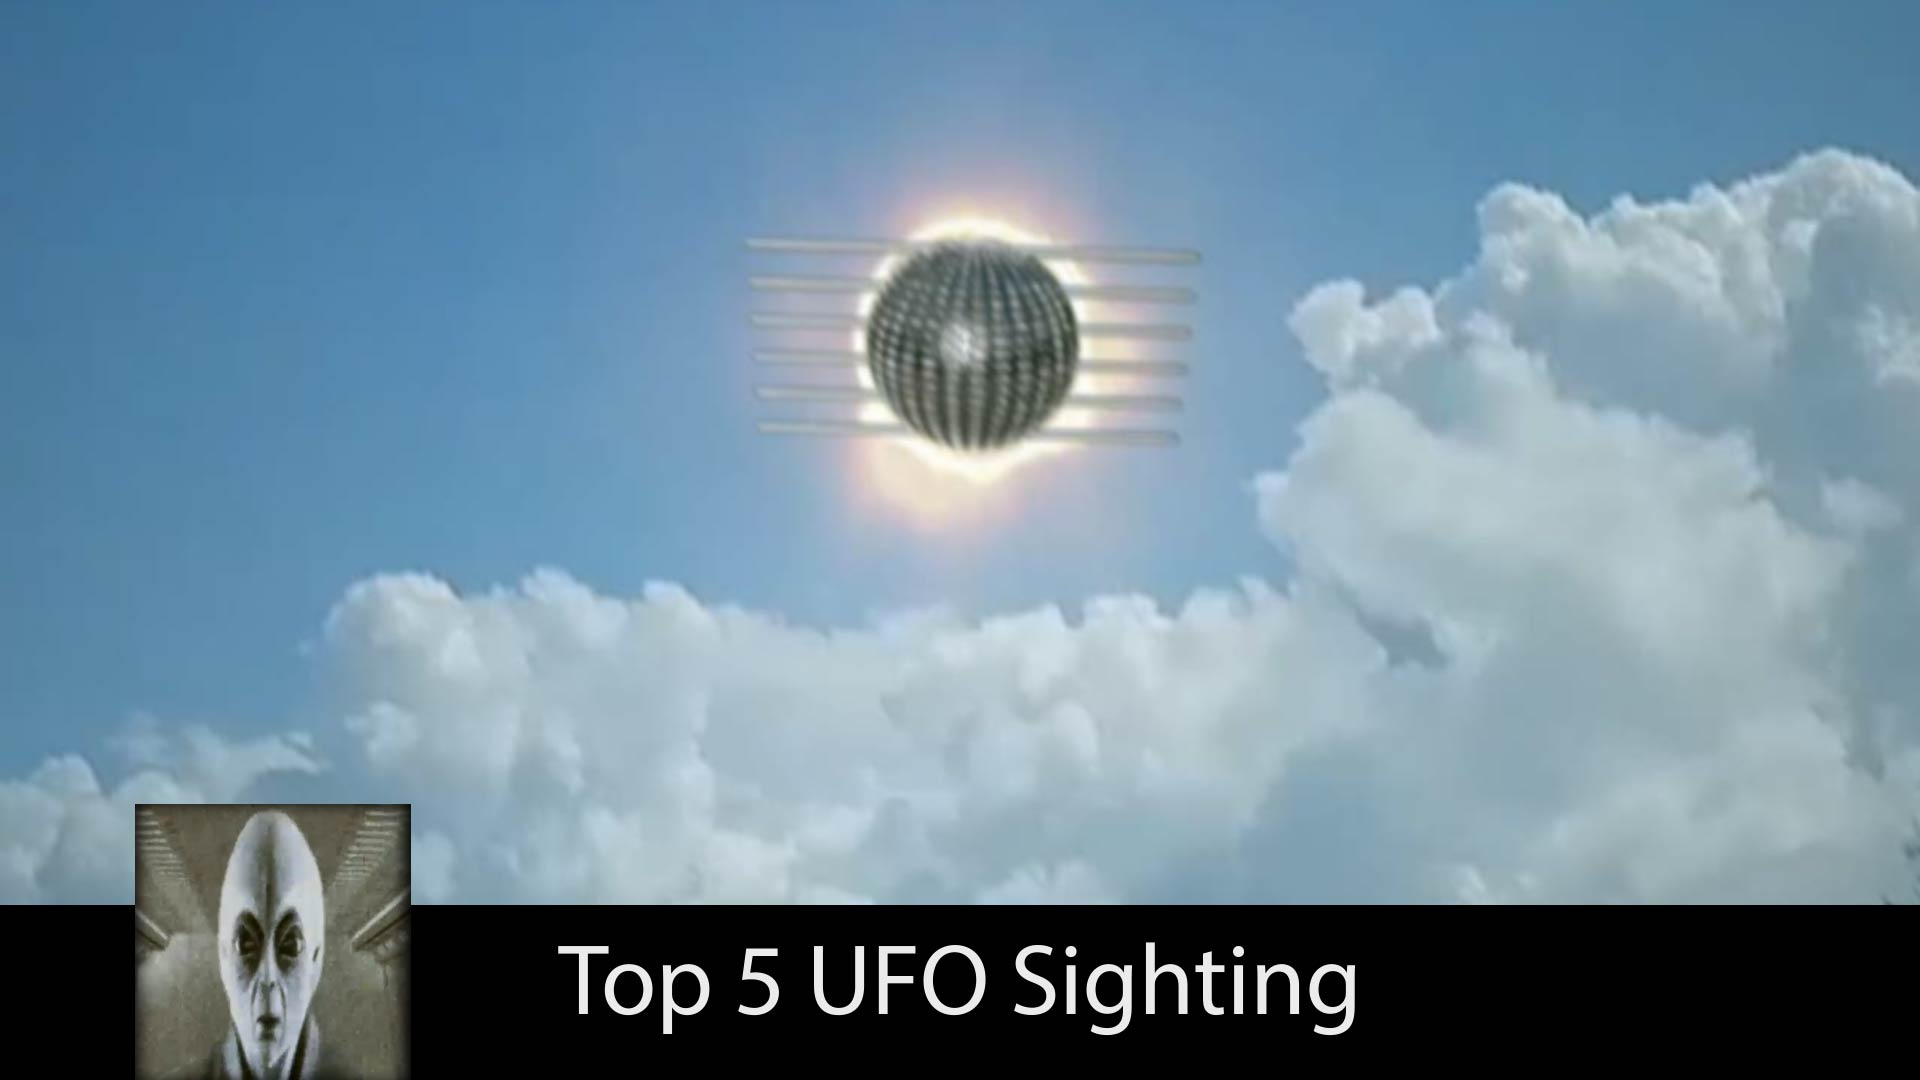 Top 5 UFO Sightings November 2nd 2017 Real UFO | iufosightings